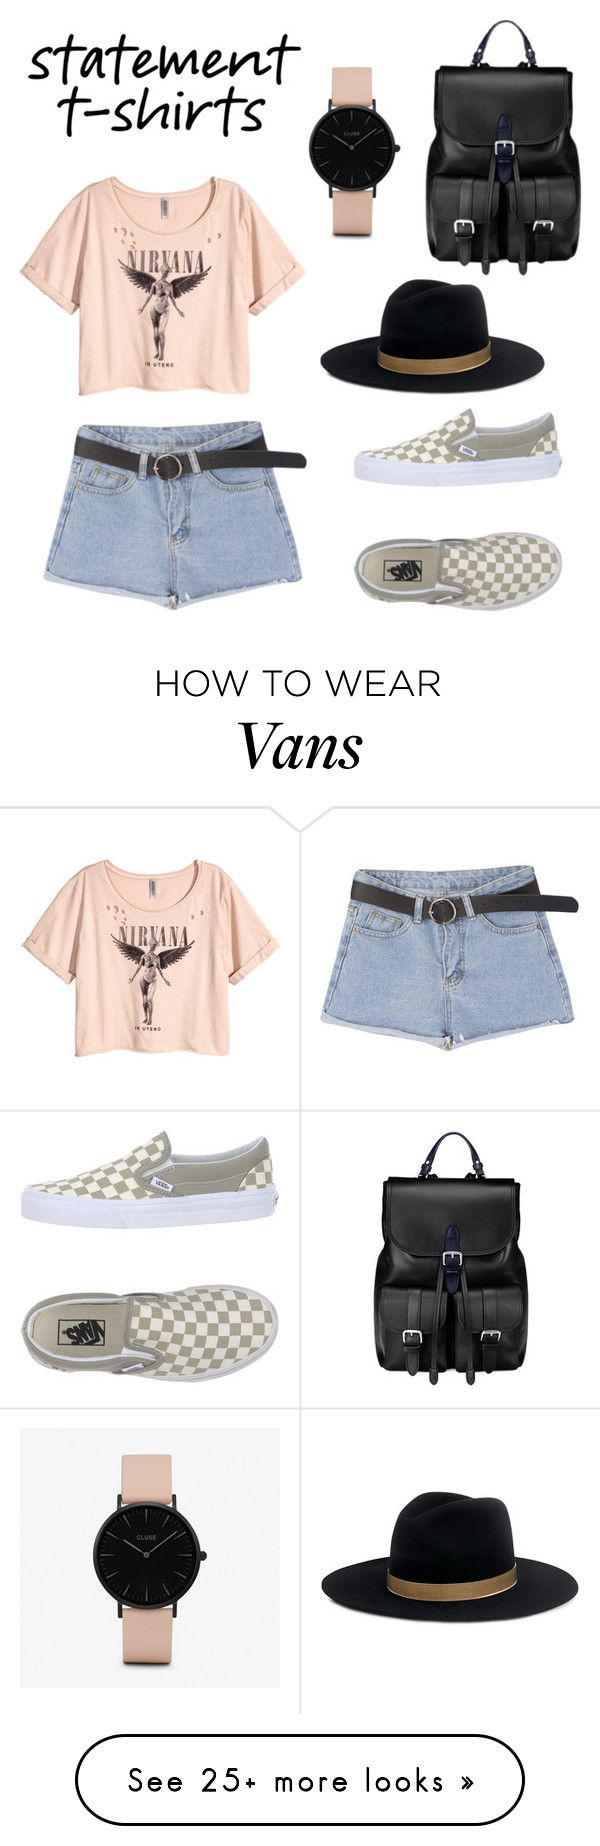 """Boho Concert ✌"" by reneeralphsxo on Polyvore featuring H&M, Vans, Janessa Leone, Aspinal of London and CLUSE"